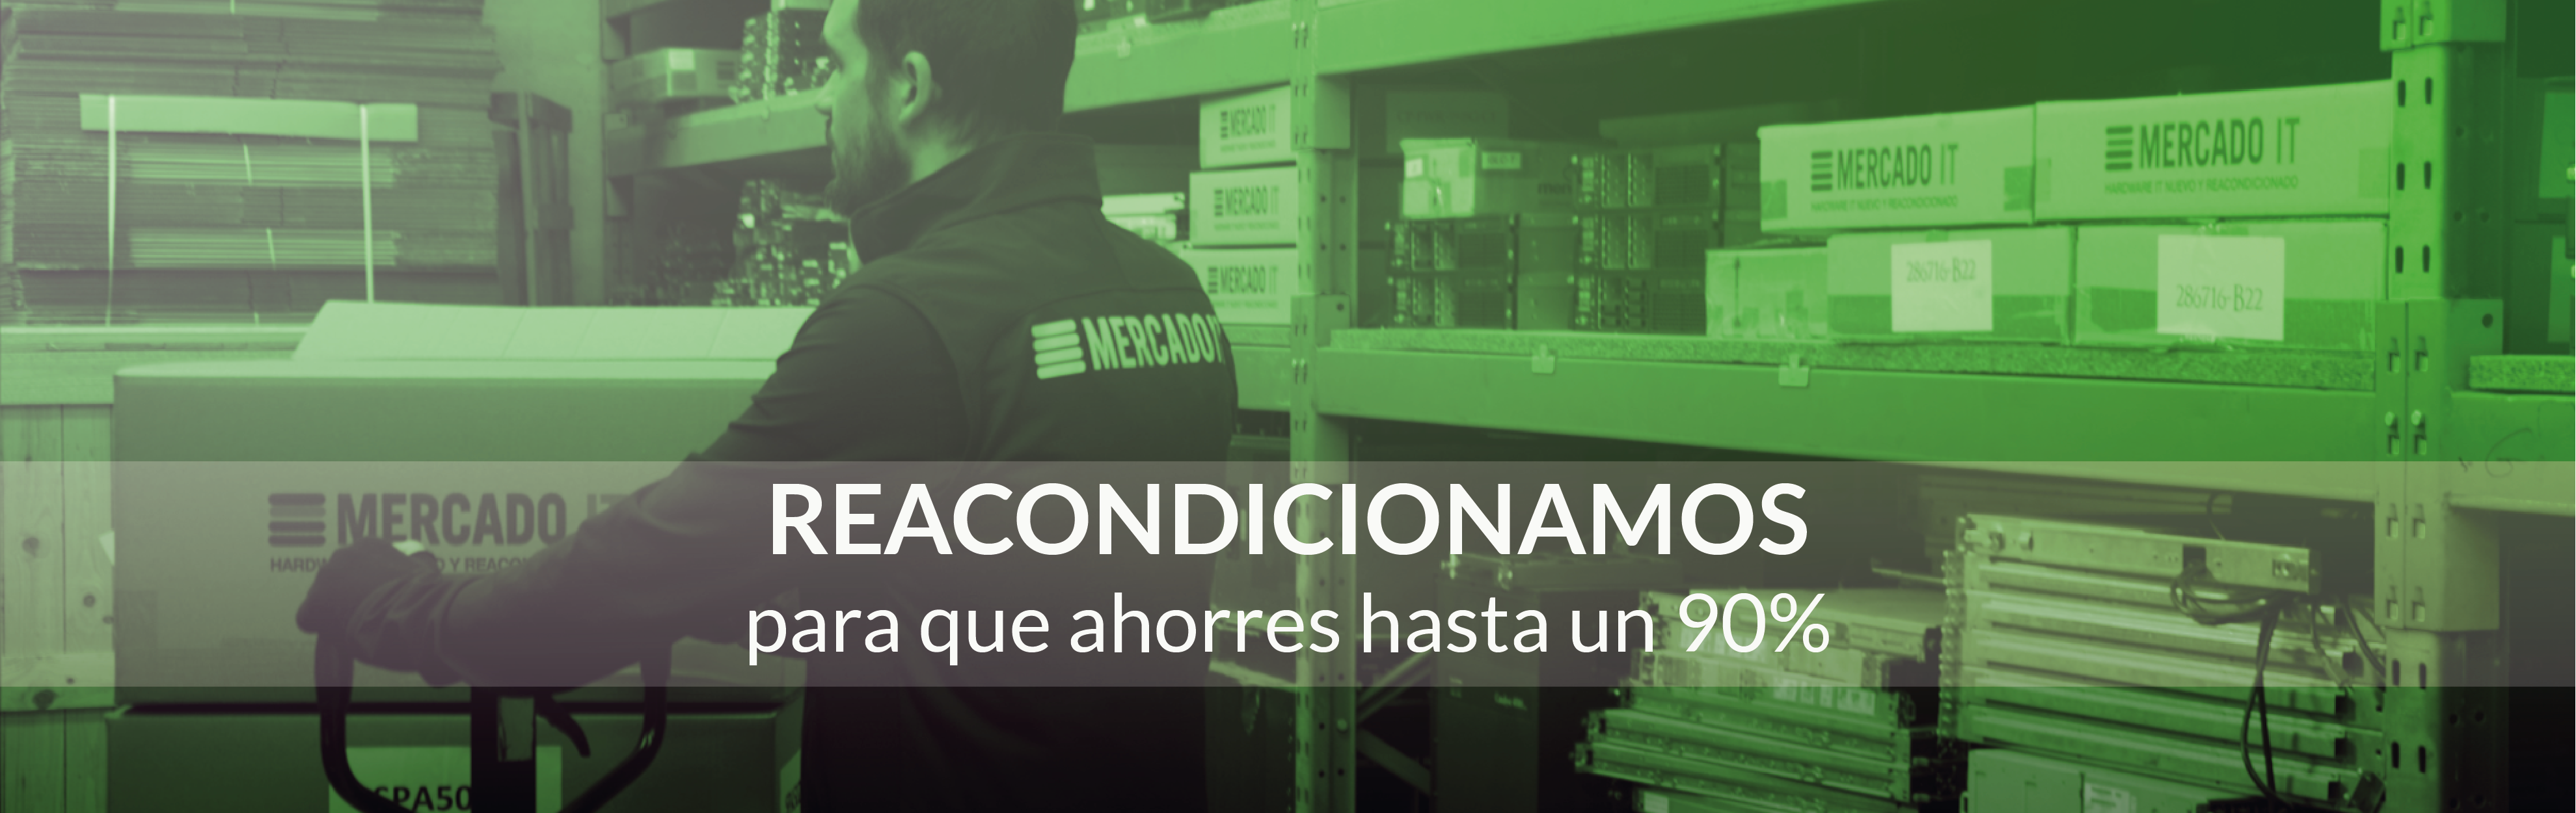 Hardware reacondicionado